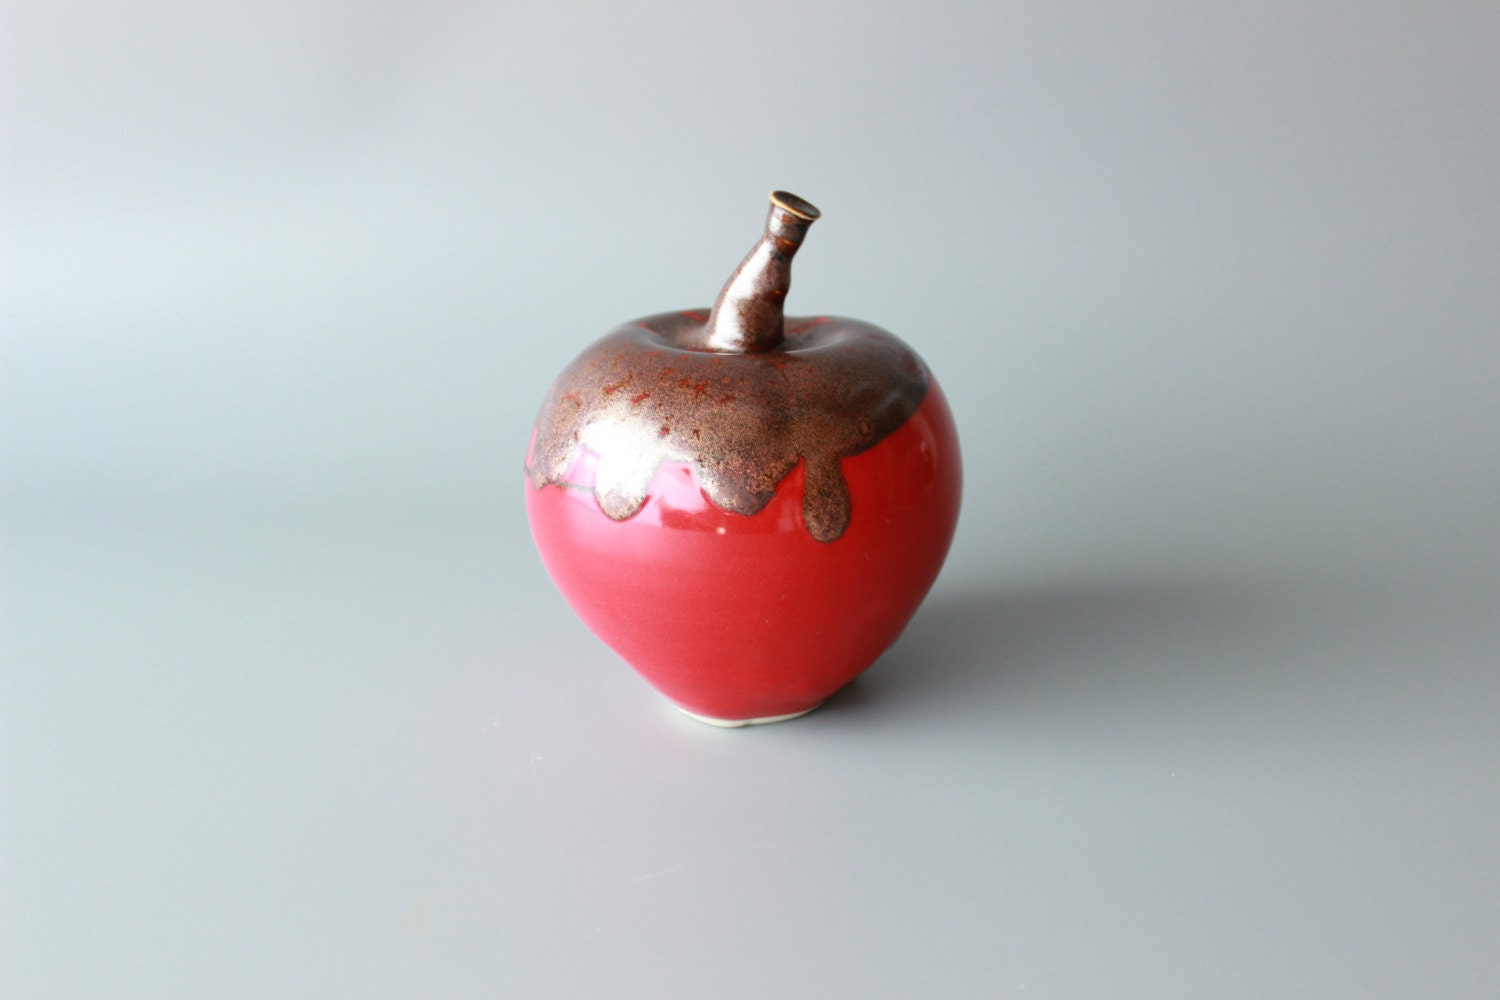 apple handmade ceramic apple home decor red table decor